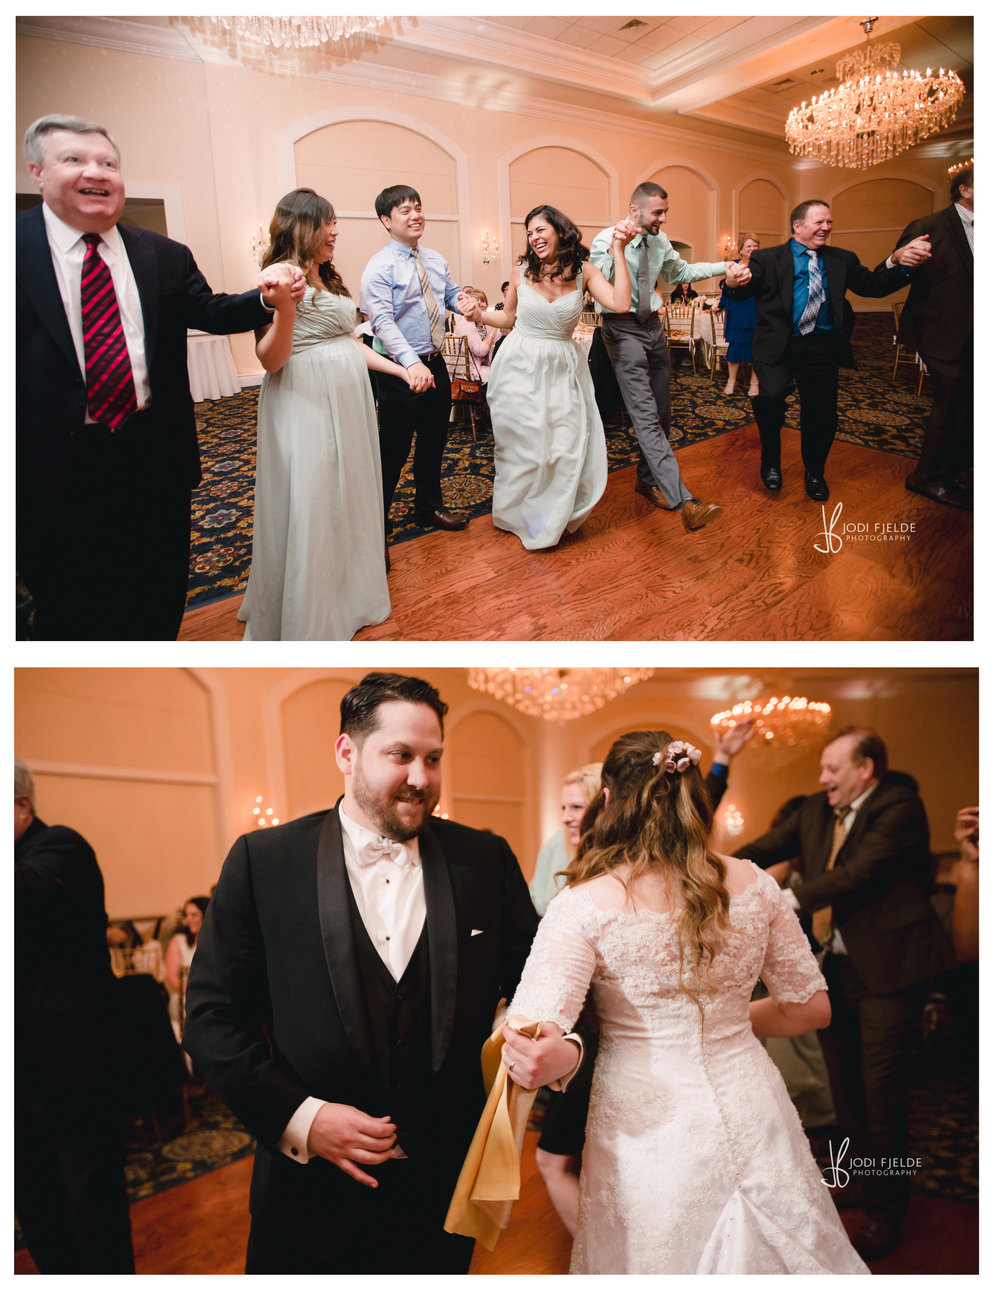 Deer_Creek_Country_Club_Wedding_Jodi_Fjelde_Photography_Andrea_Jason_23.jpg